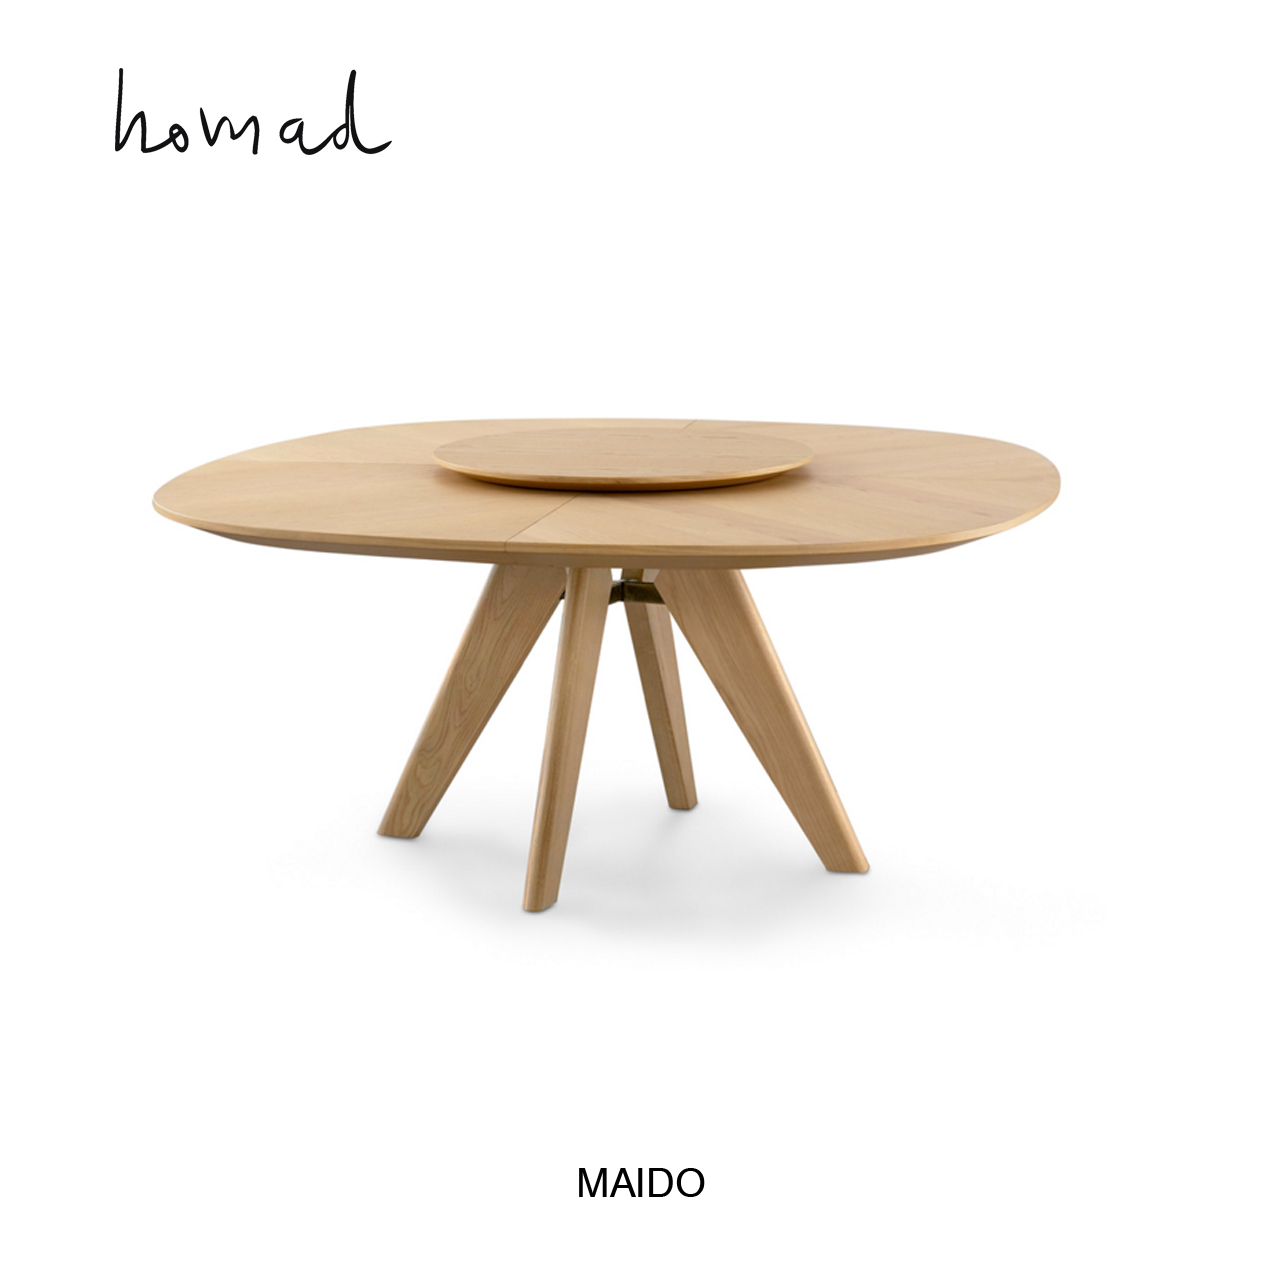 maido table homad